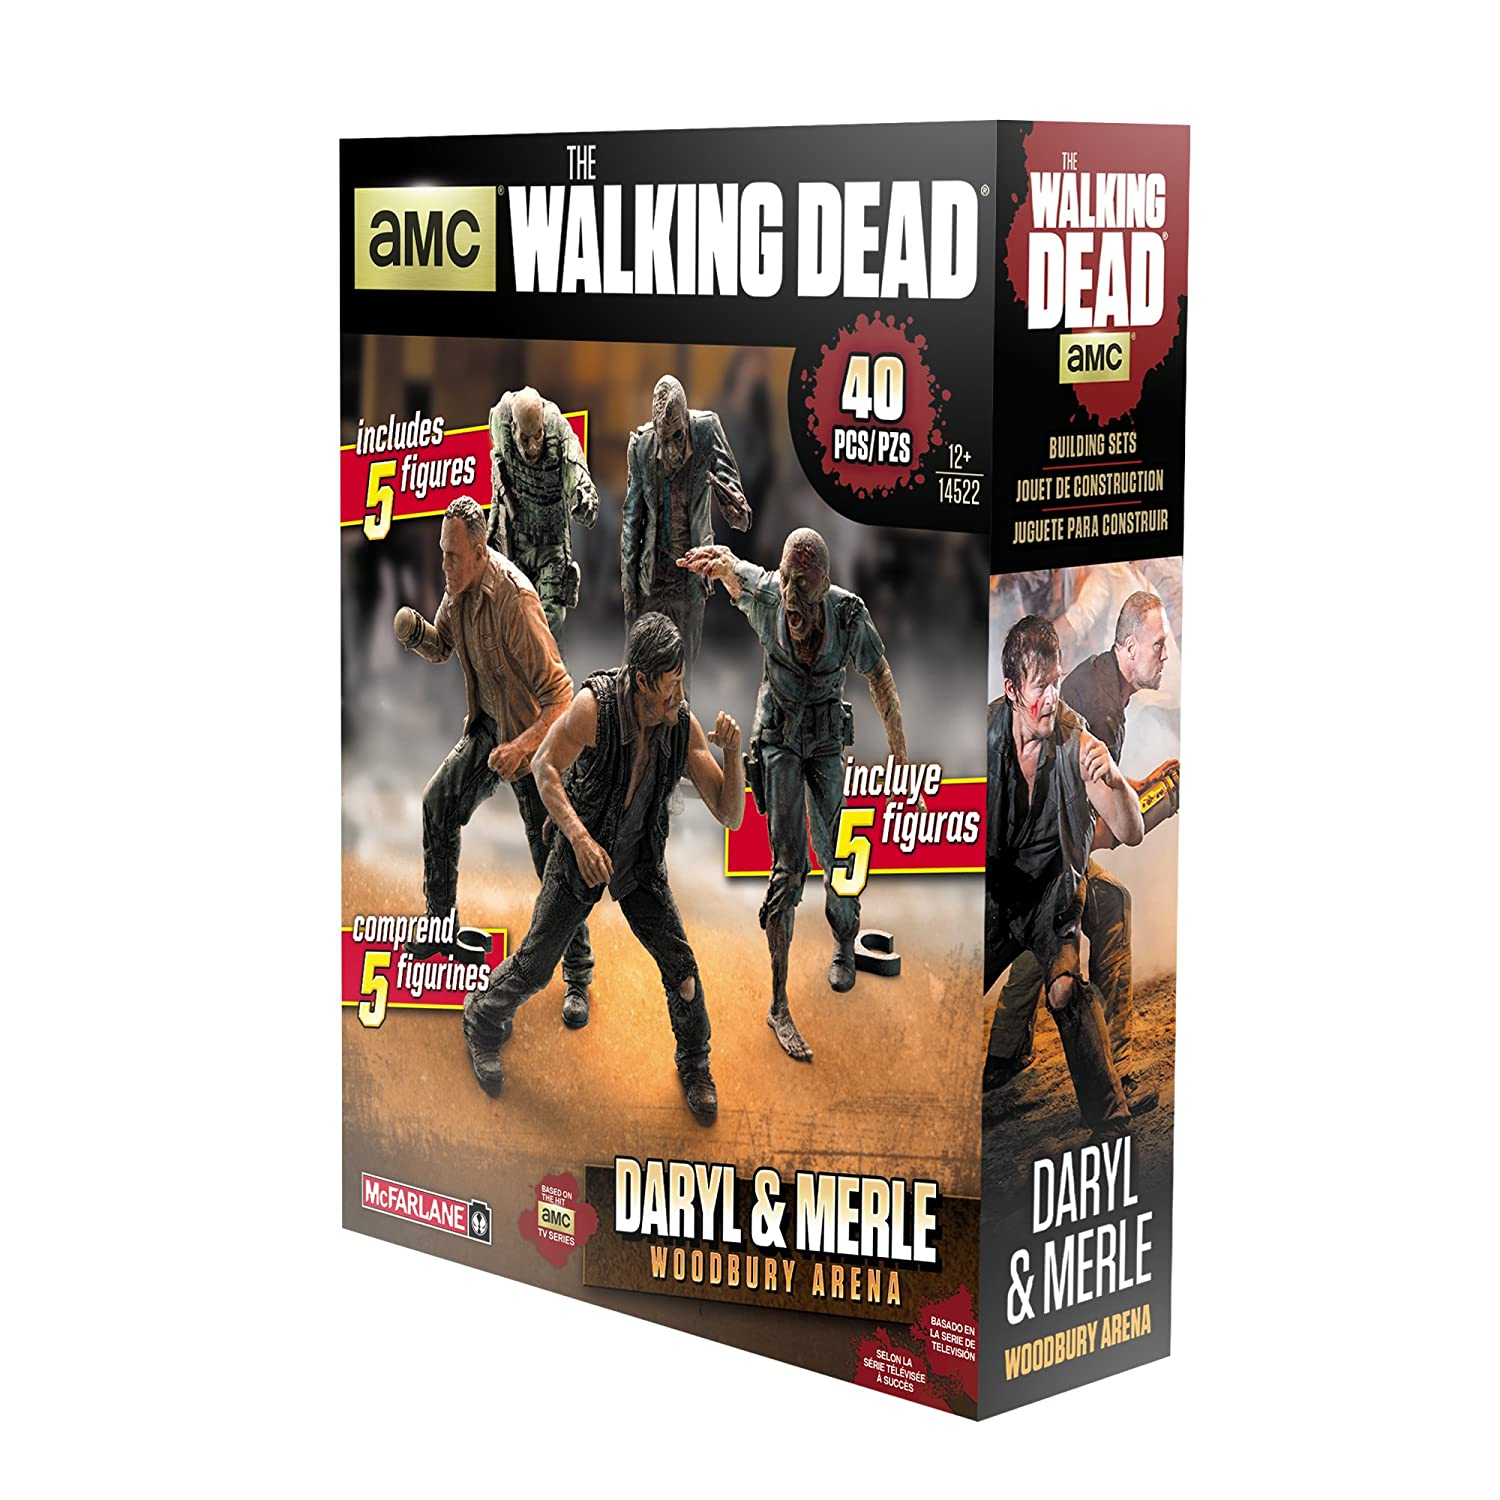 McFarlane Toys Construction Sets The Walking Dead TV Merle /& Daryl Woodbury Arena Pack Action Figure 14522-9